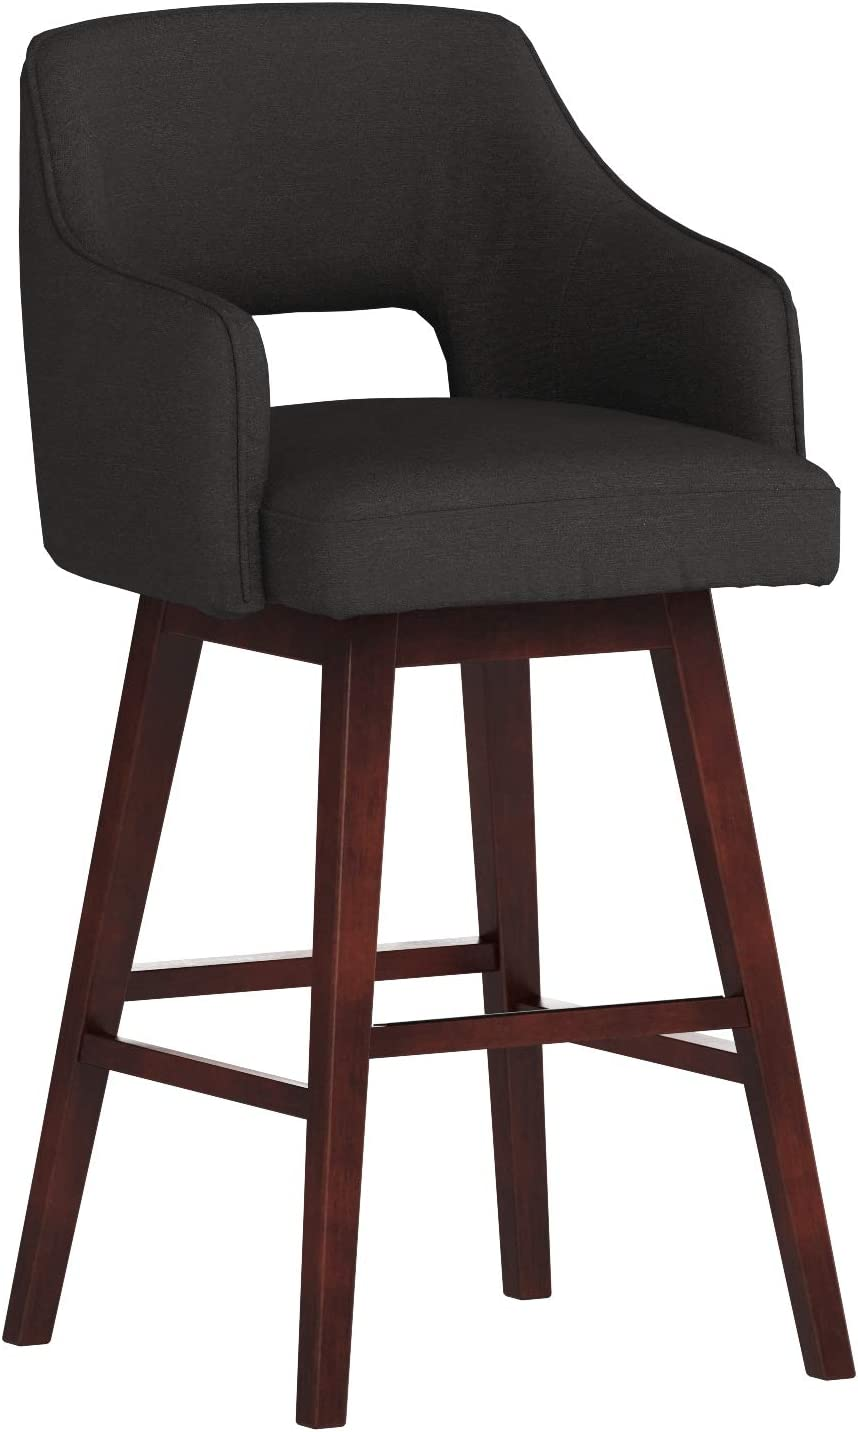 Rivet Malida Mid-Century Modern Open Back Swivel Padded Kitchen Bar Stool with Arms, 41 Inch Height, Charcoal Black, Wood